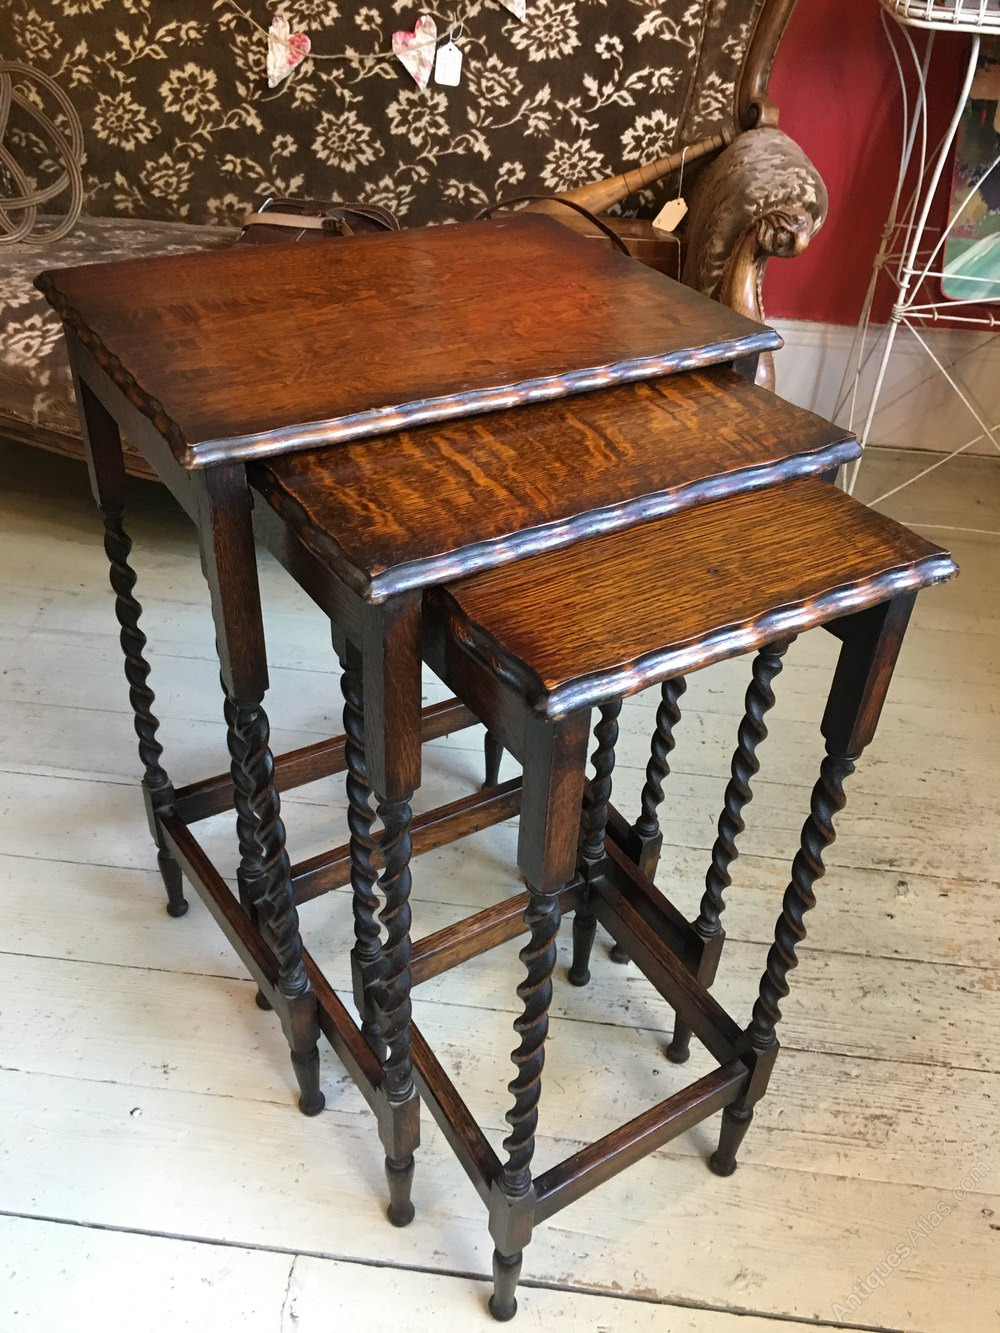 English Oak Barley Twist Nesting Tables Antique Nest Of Tables ...